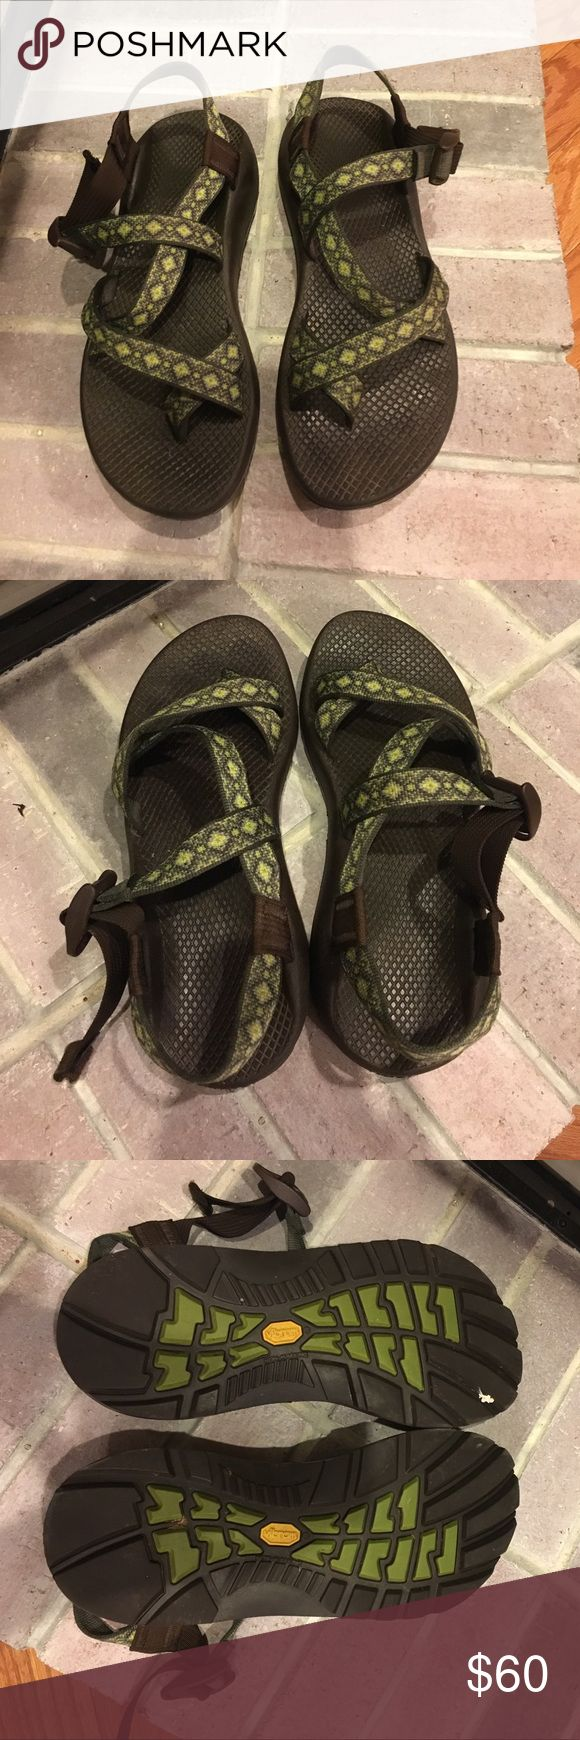 Chaco - women's size 9 I have women's size 9 Chacos for sale. Chaco Shoes Athletic Shoes